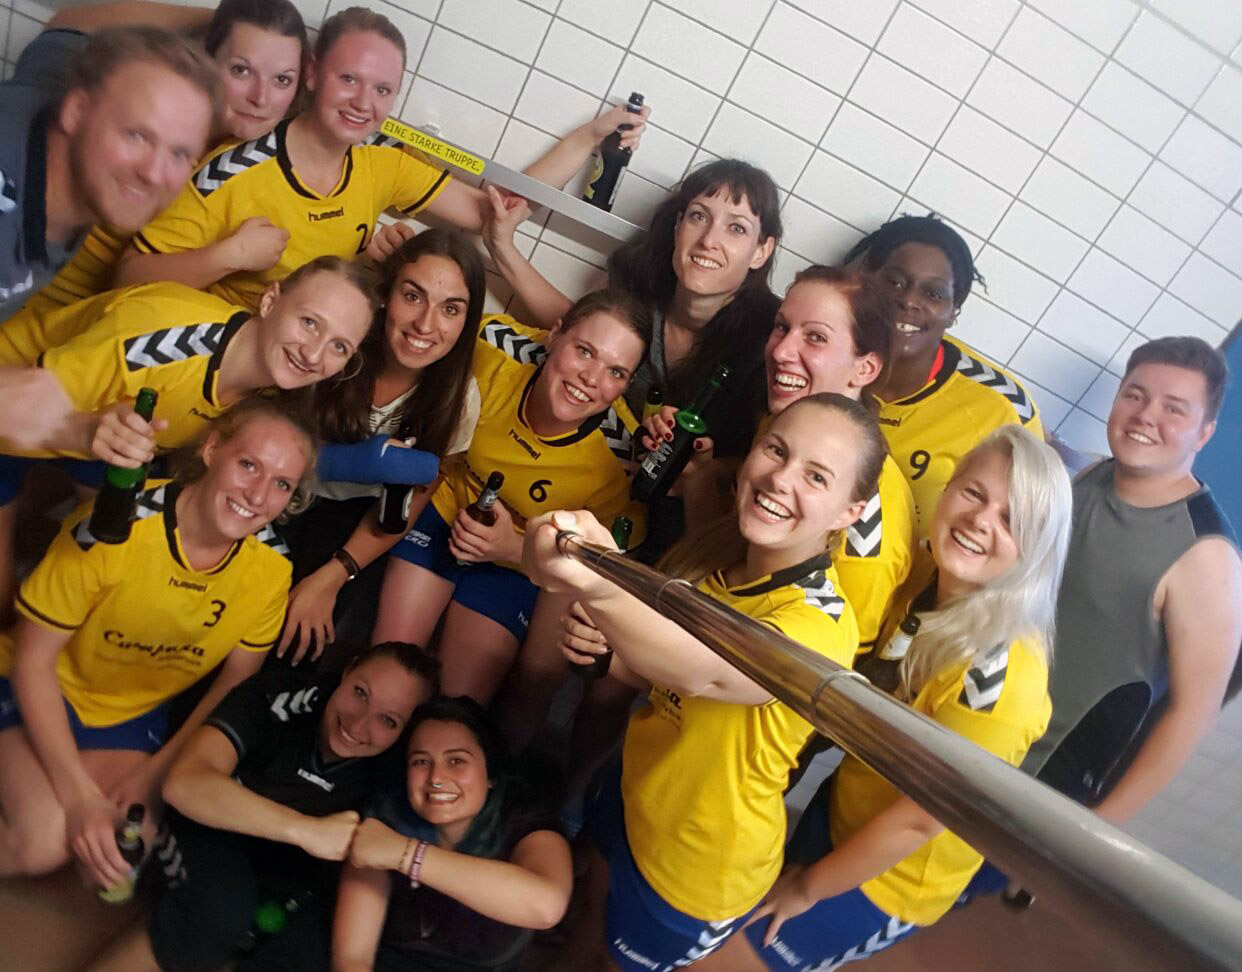 Single frauen marburg UKGM Gießen/Marburg - Team